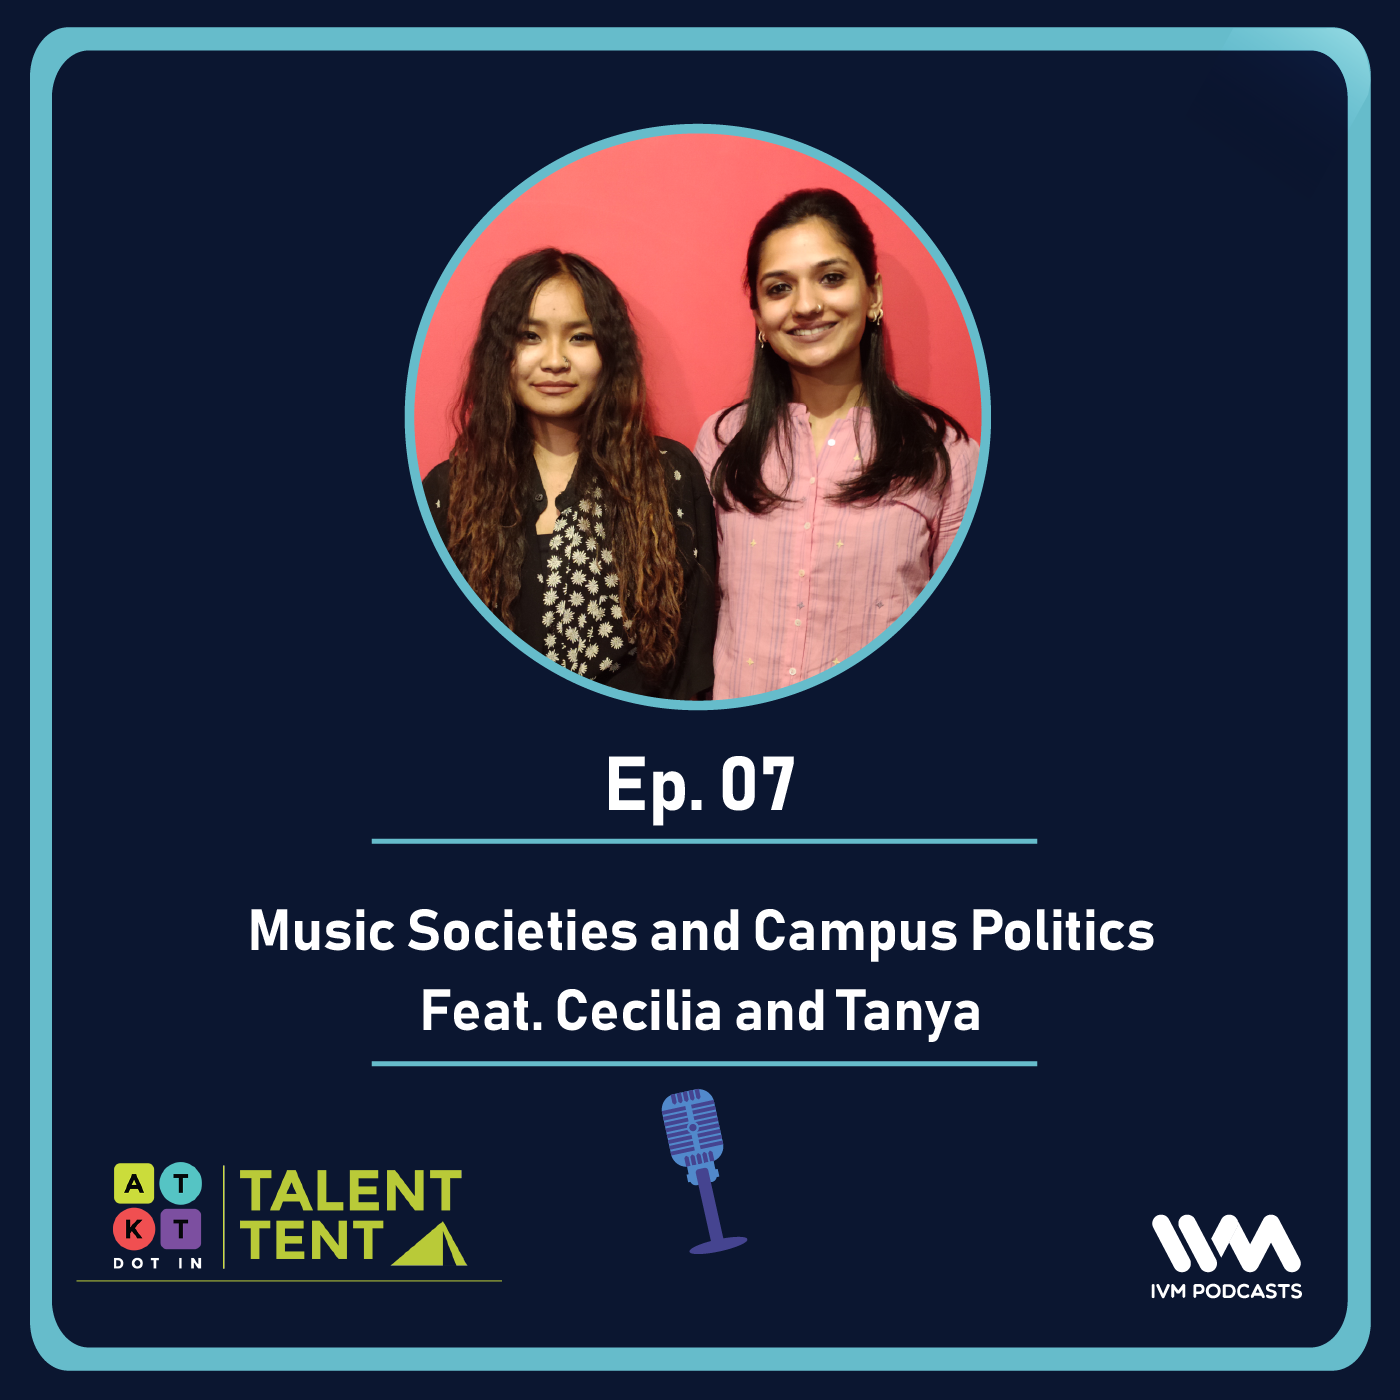 Ep. 07: Music Societies and Campus Politics